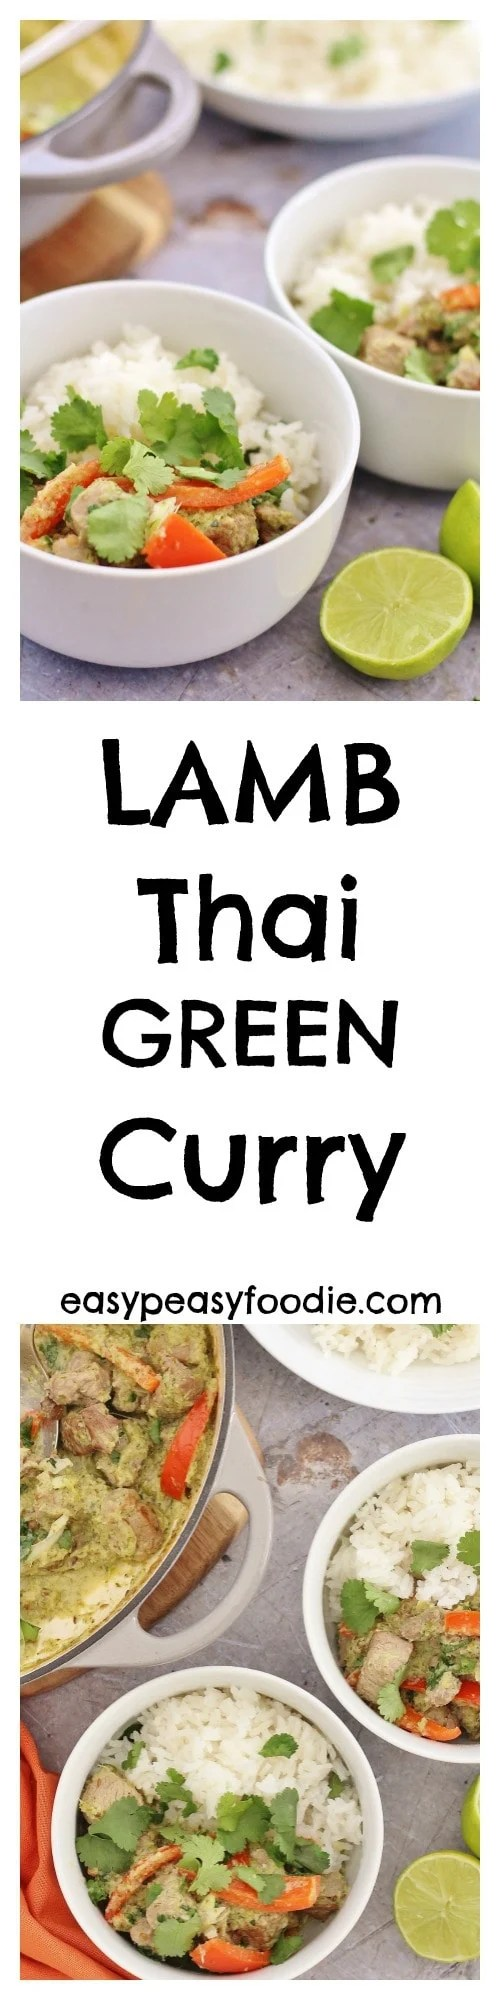 Thai green curry is fab, but have you ever tried it with lamb? My Lamb Thai Green Curry is full of the delicious, aromatic flavours of lemongrass, coriander, cumin, garlic and chilli, and can made from scratch in under 30 minutes! It's also dairy and gluten free and can be adapted to make it mild enough to serve to young children – or you can make it as hot as you like! #lamb #thai #green #curry #lambcurry #thaigreencurry #onepot #20minutes #easydinners #easypeasyfoodie